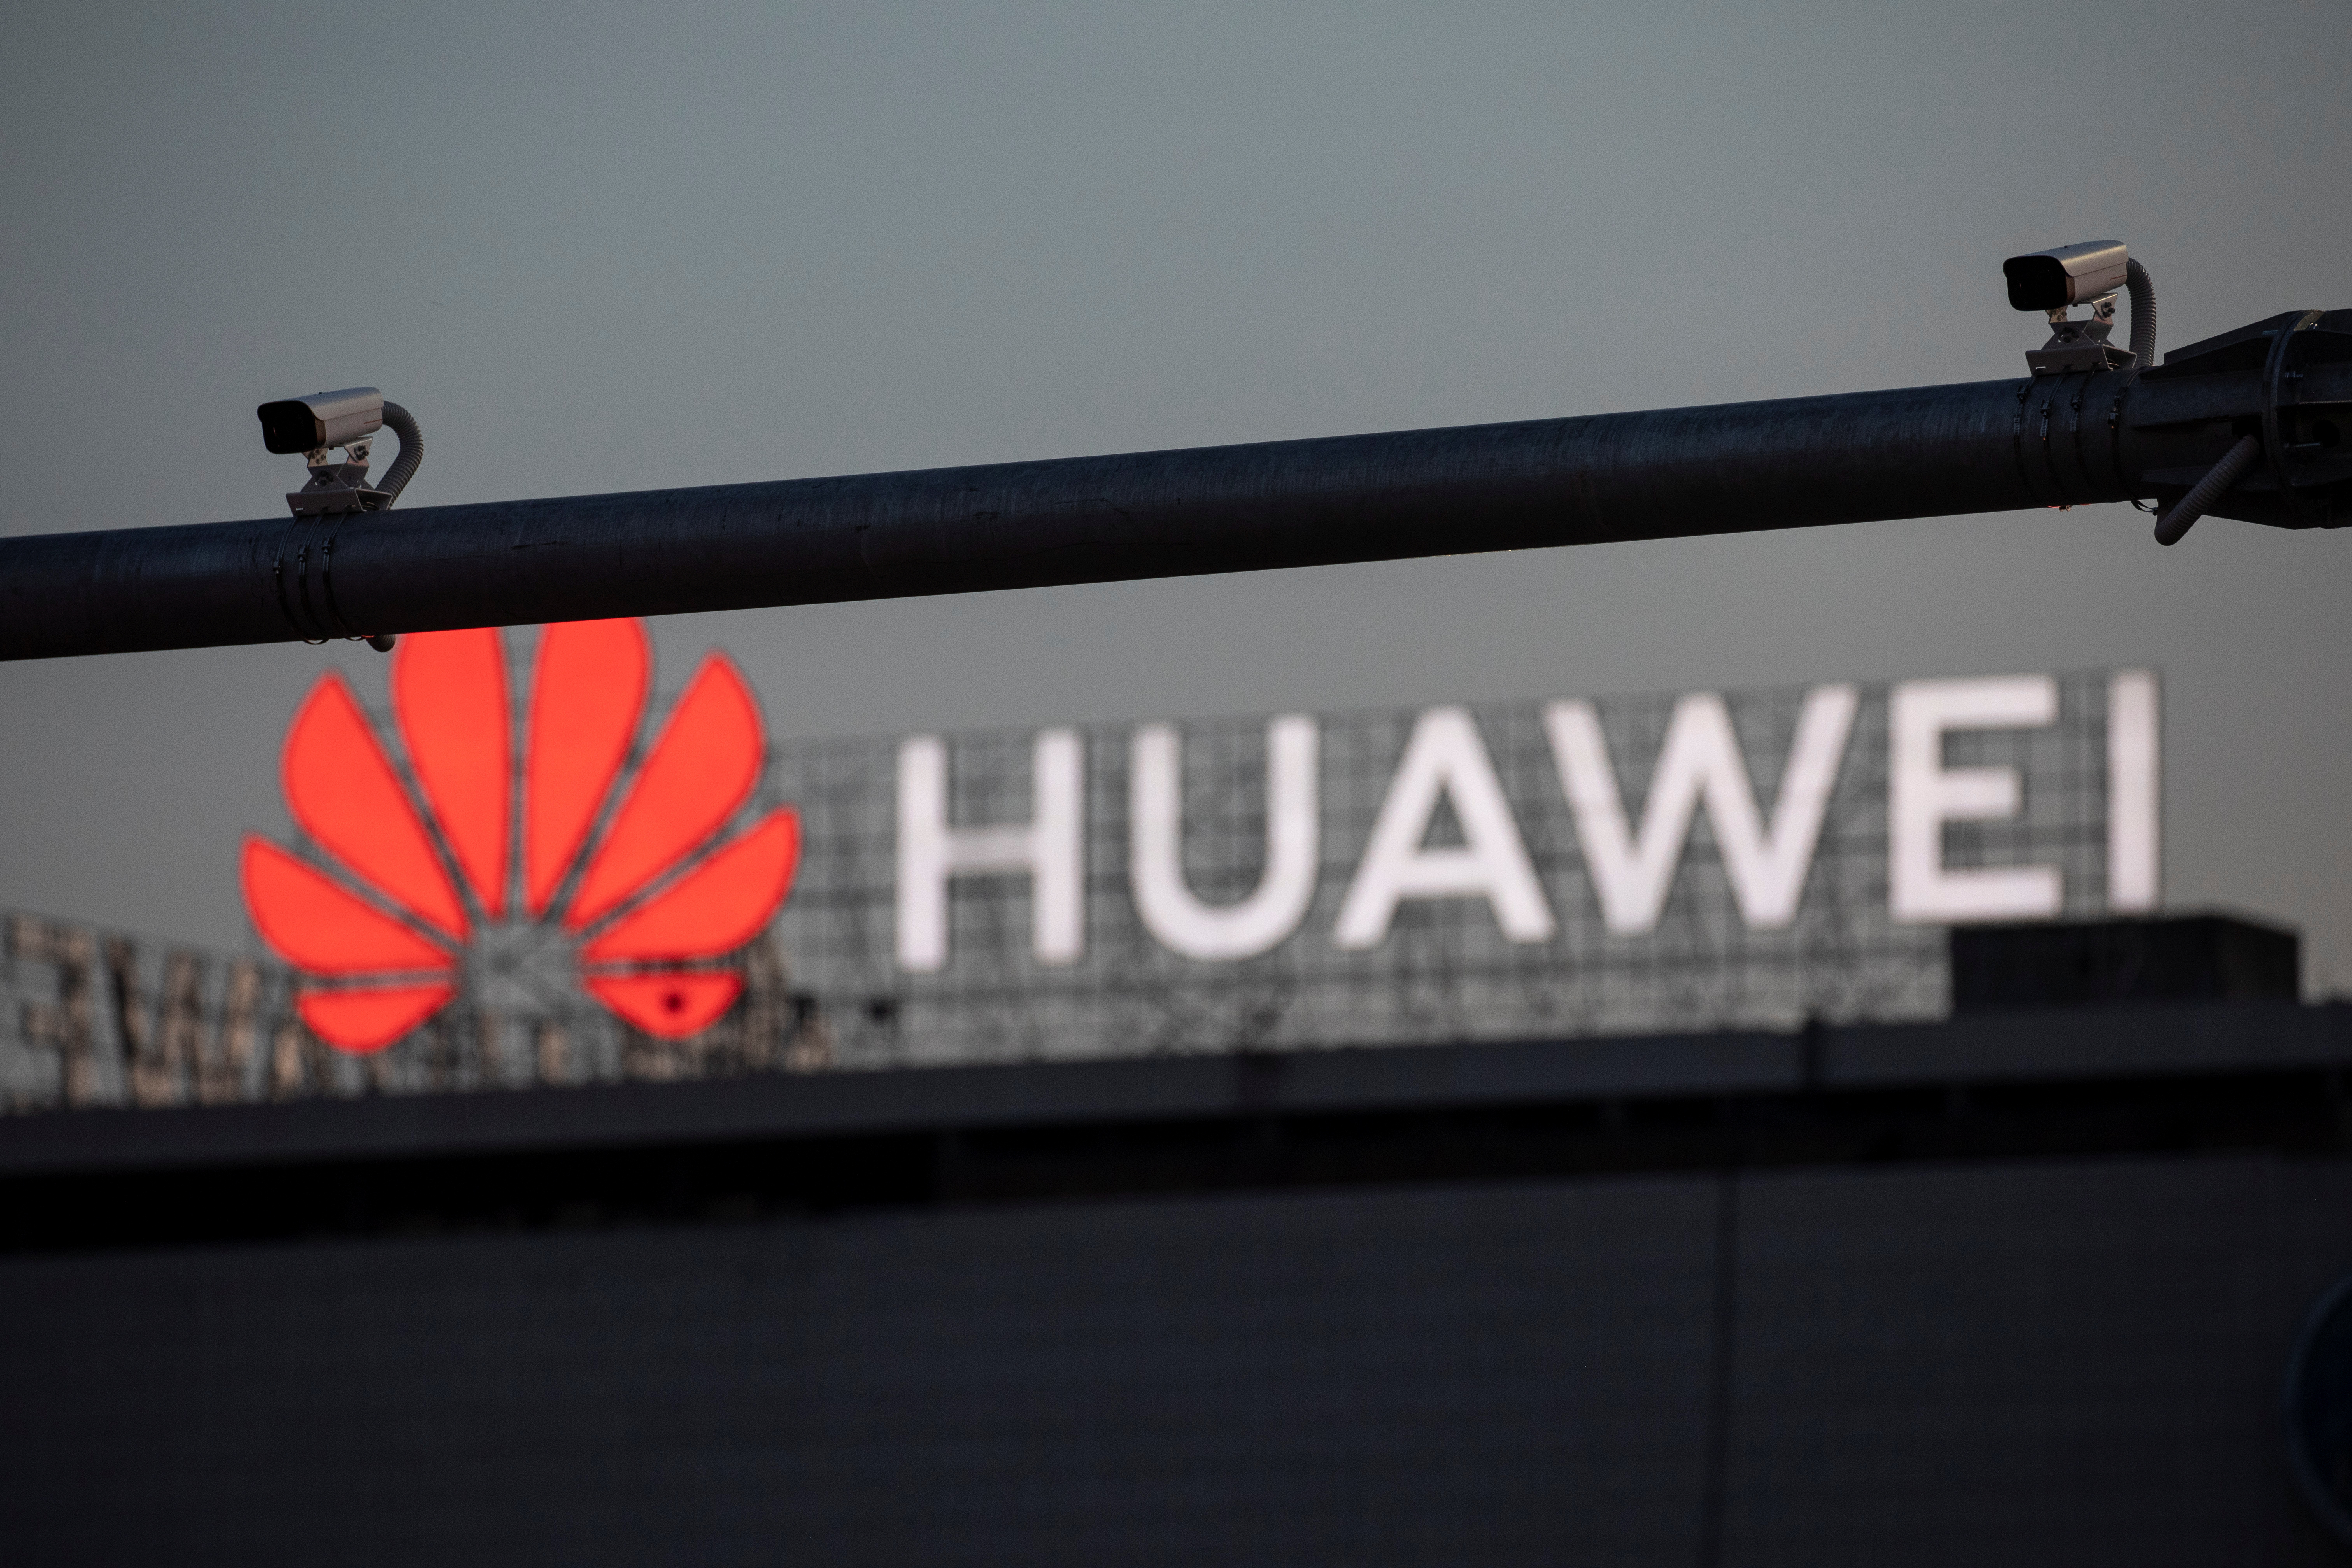 Surveillance cameras are seen in front of a Huawei logo in Belgrade, Serbia, August 11, 2020. Picture taken August 11, 2020. REUTERS/Marko Djurica